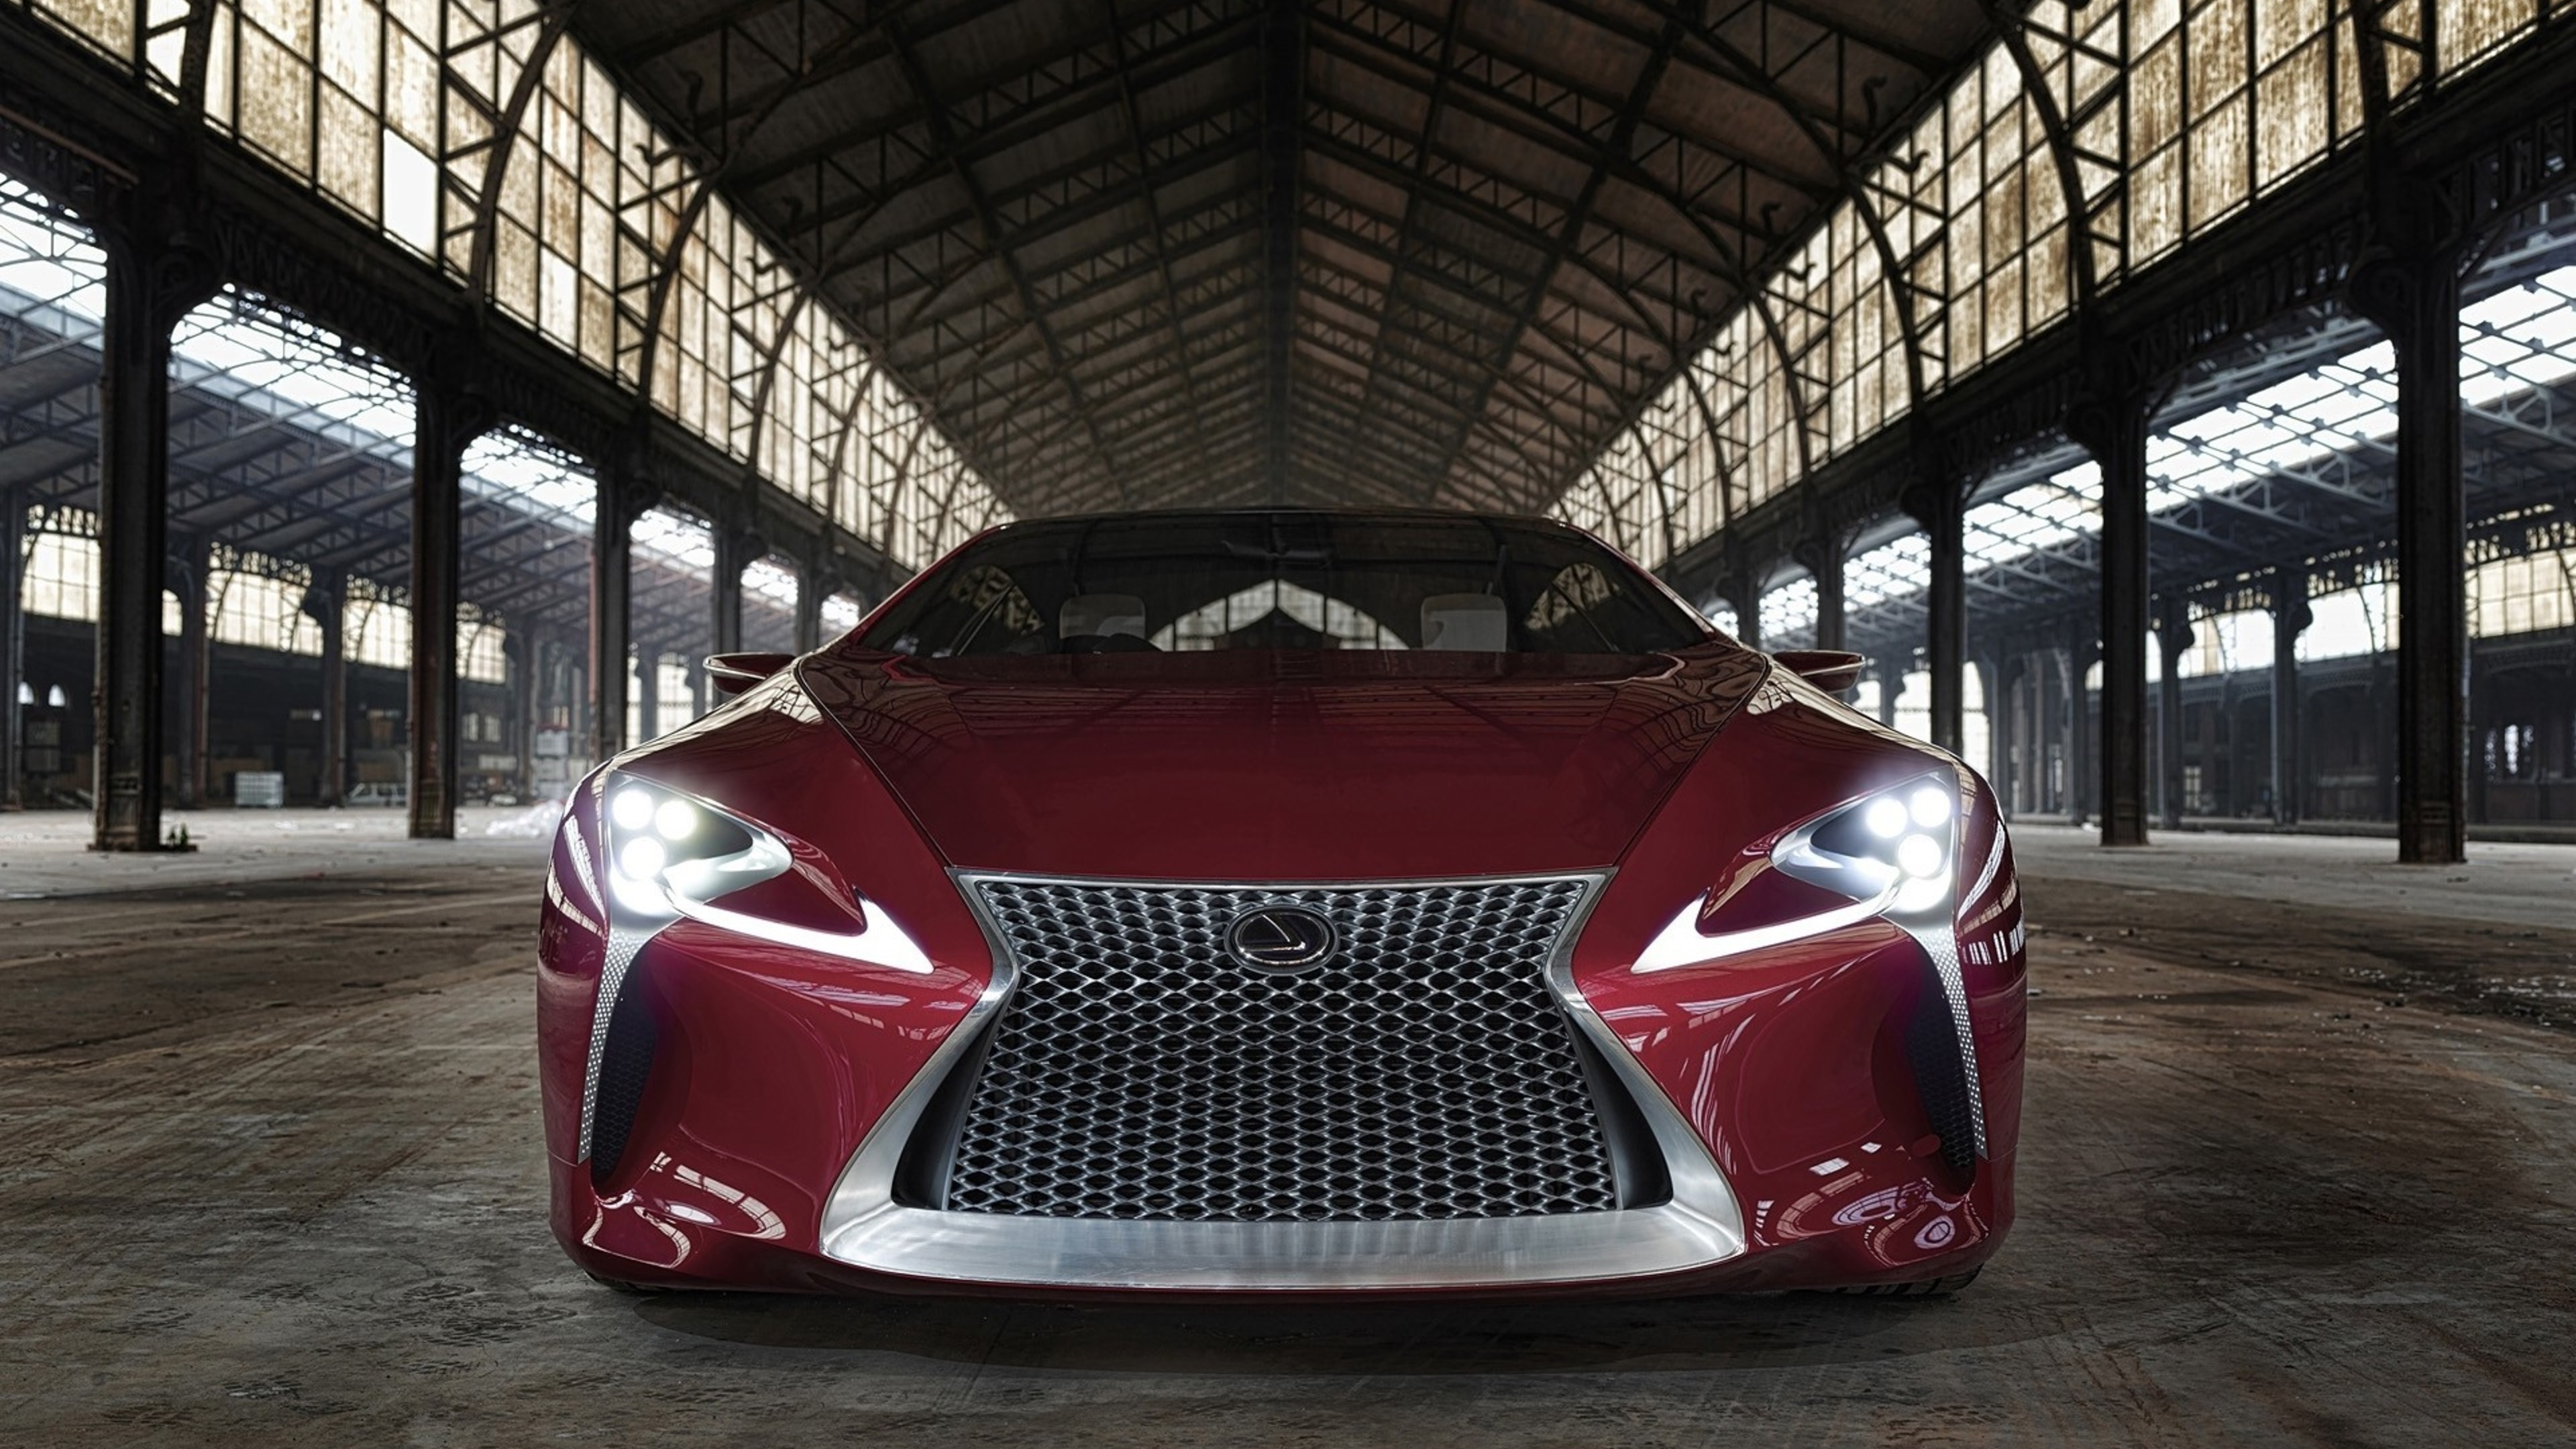 2106 Lexus LC 500, HD Cars, 4k Wallpapers, Images ...